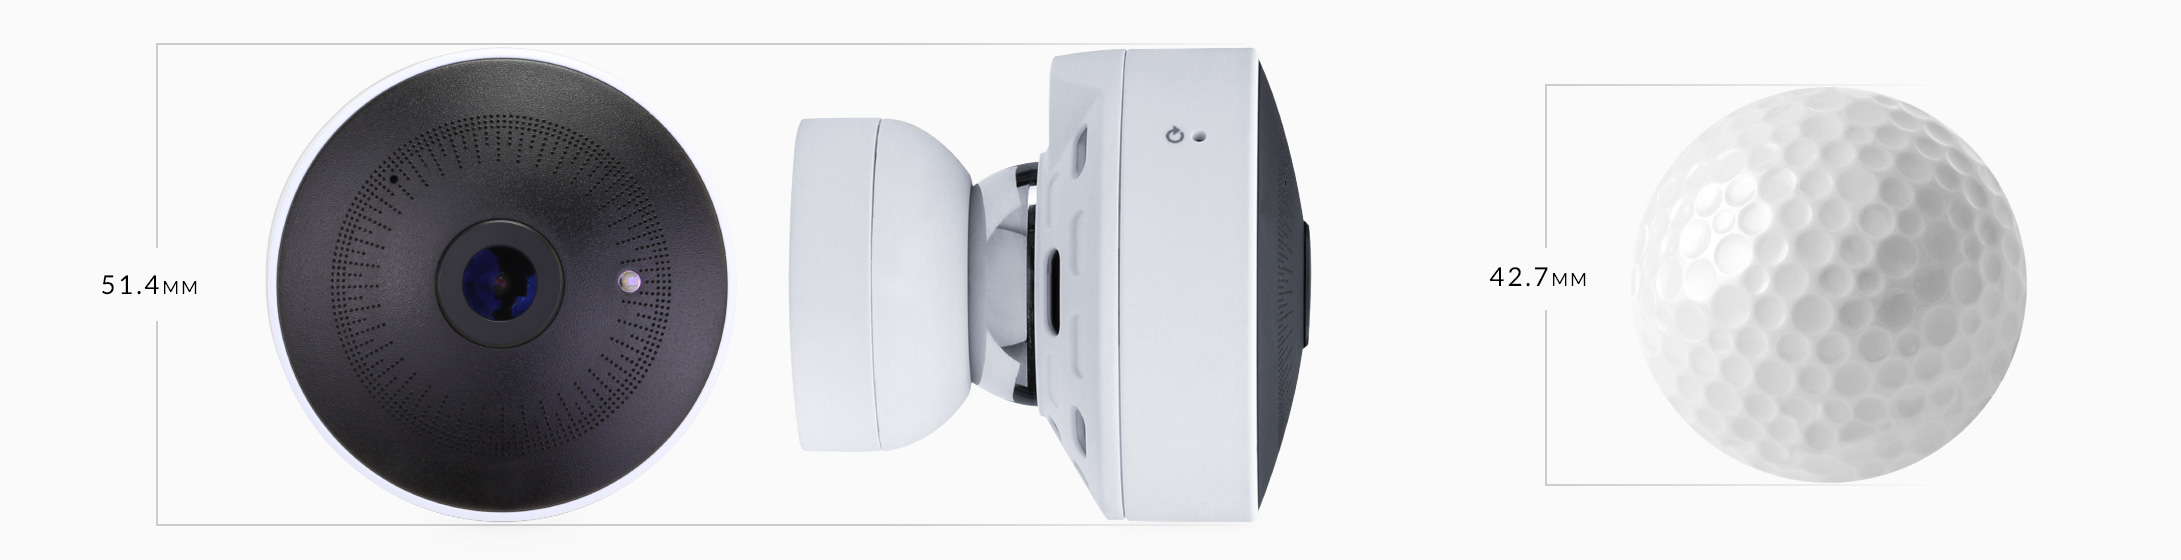 Ubiquiti - UniFi® Video Camera G3 Micro